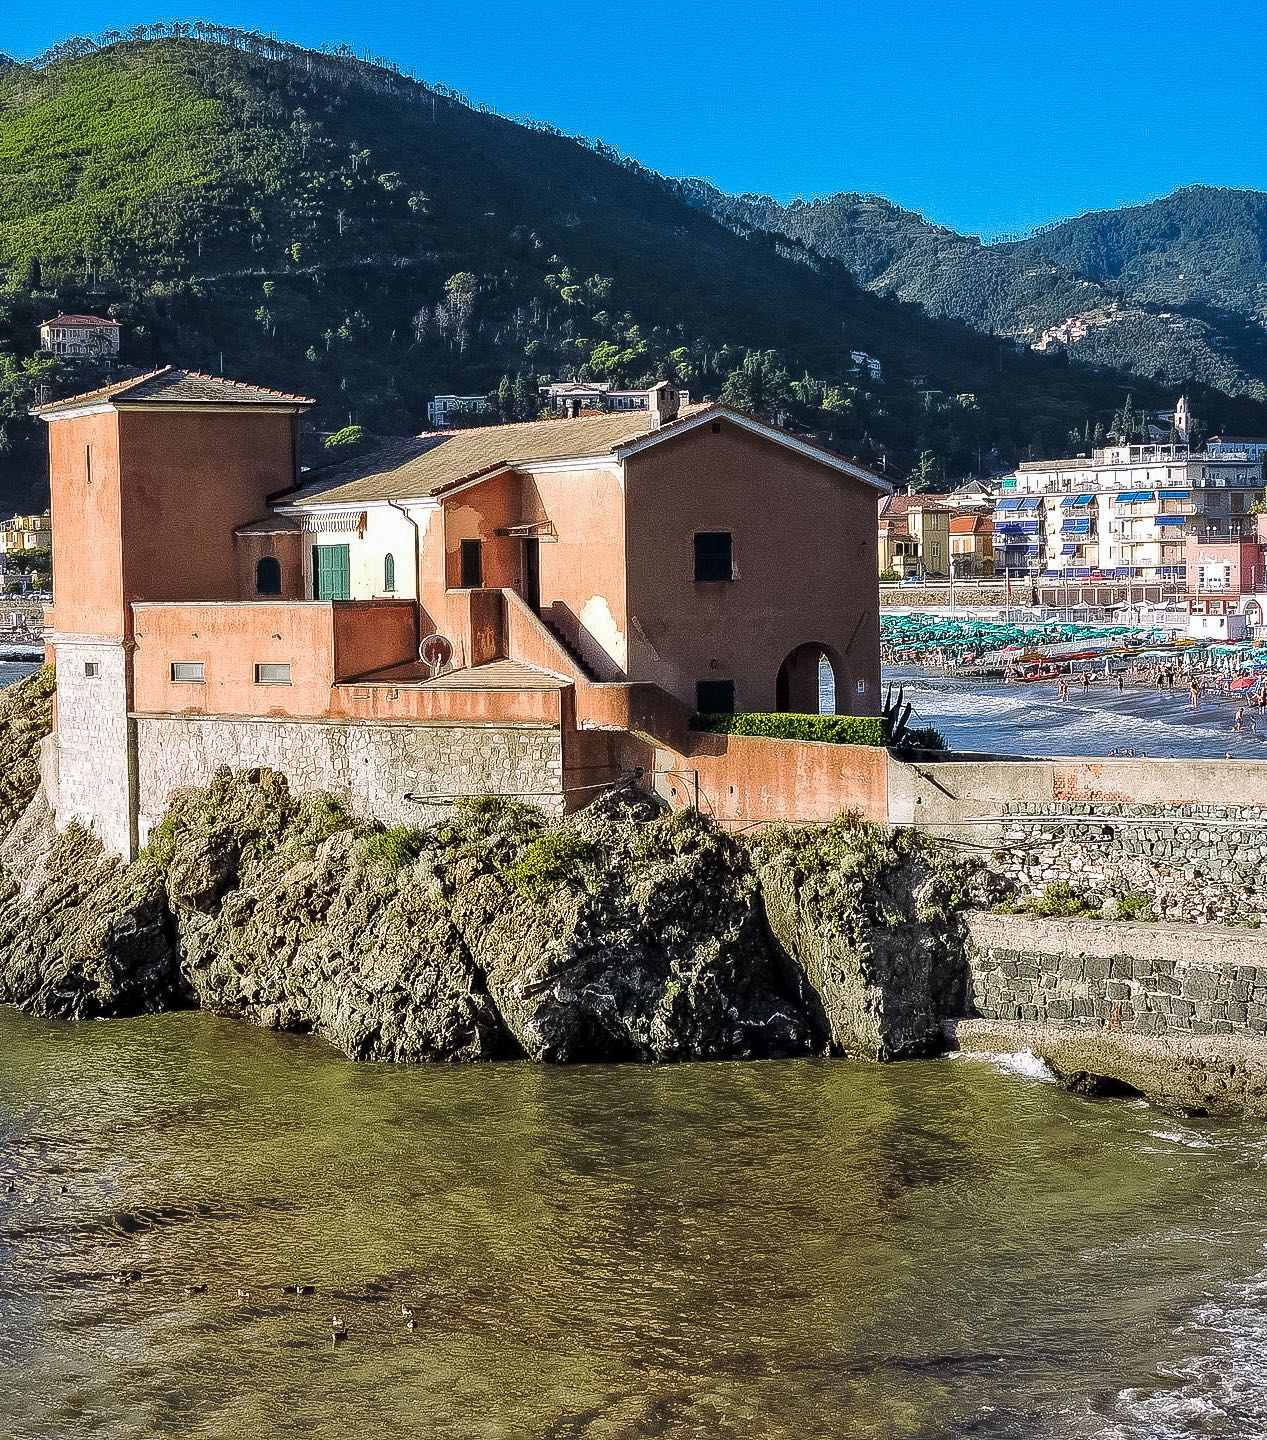 The coastal town of Levanto in Liguria